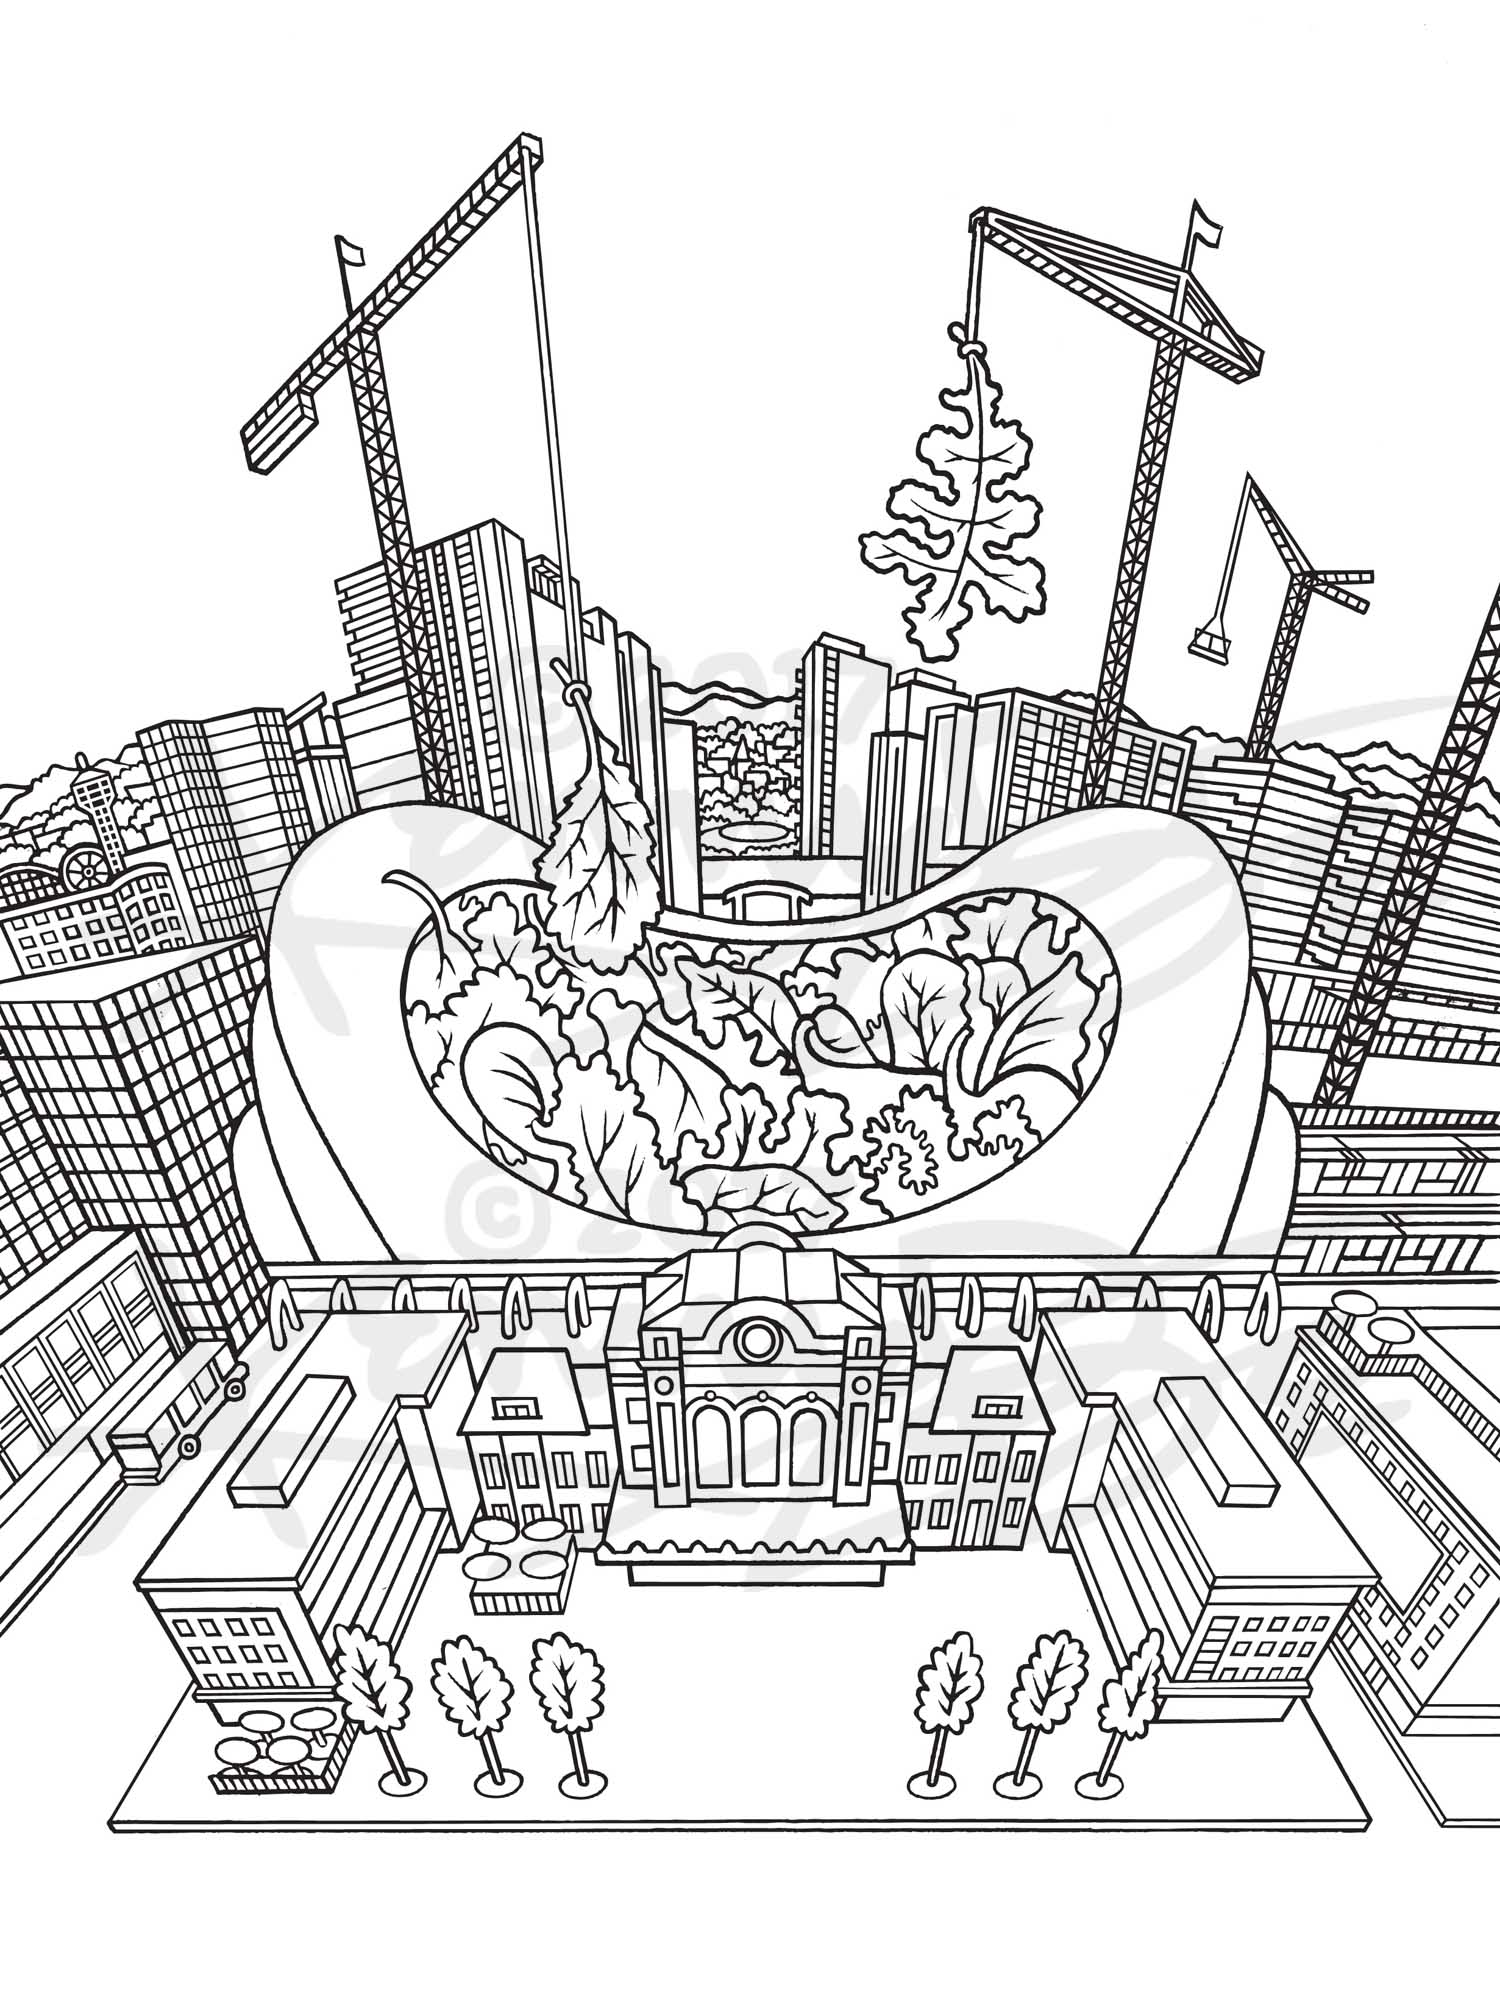 3. Union Station Mesclun Denver Neighborhood Seed Company Kenny Be Art & Design kennybe.com BW Line Art.jpg